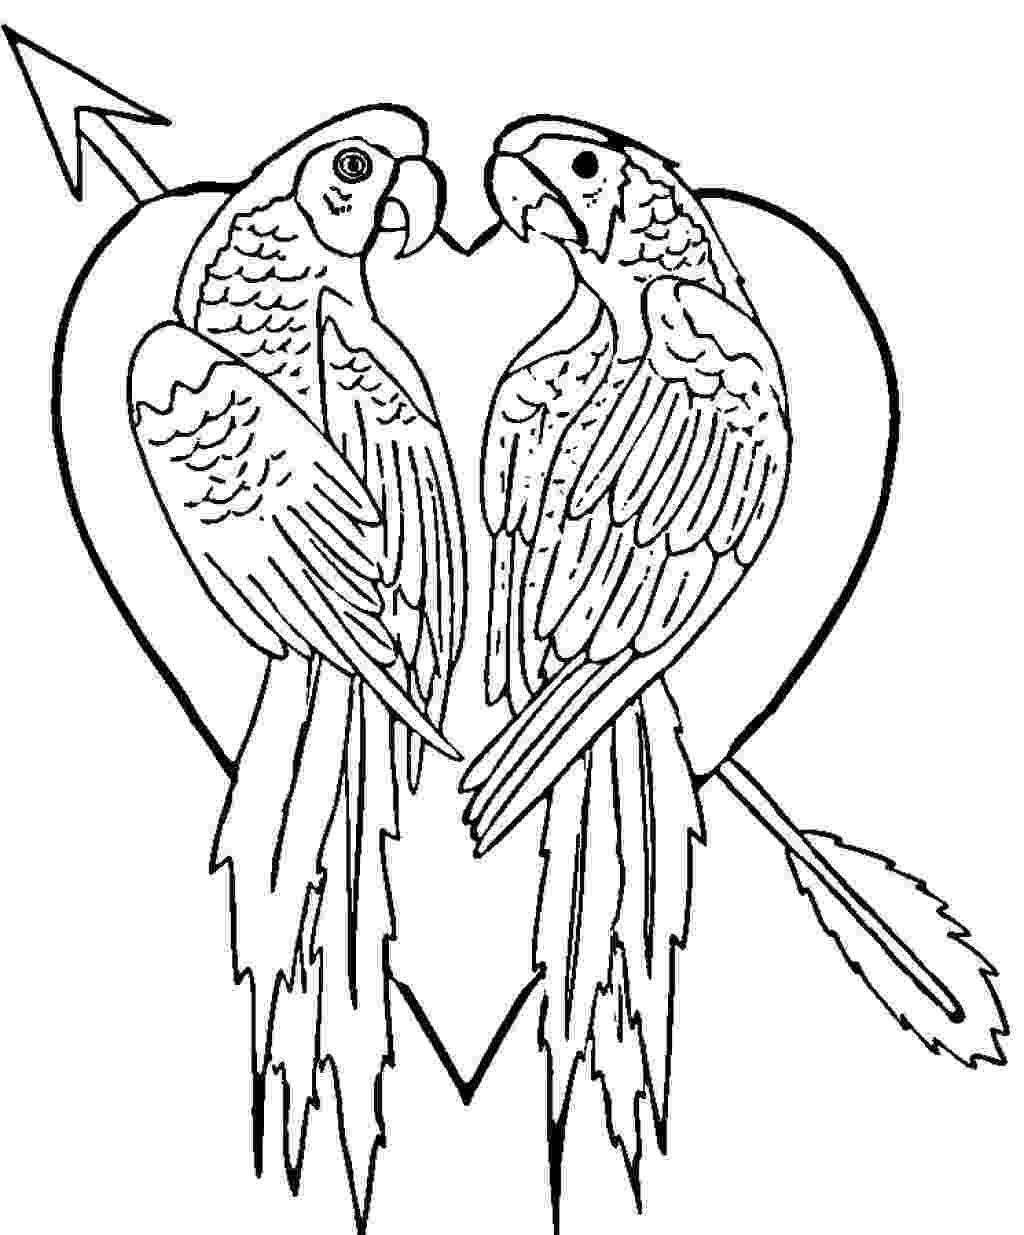 cockatiel coloring pages parrots coloring pages to download and print for free pages coloring cockatiel